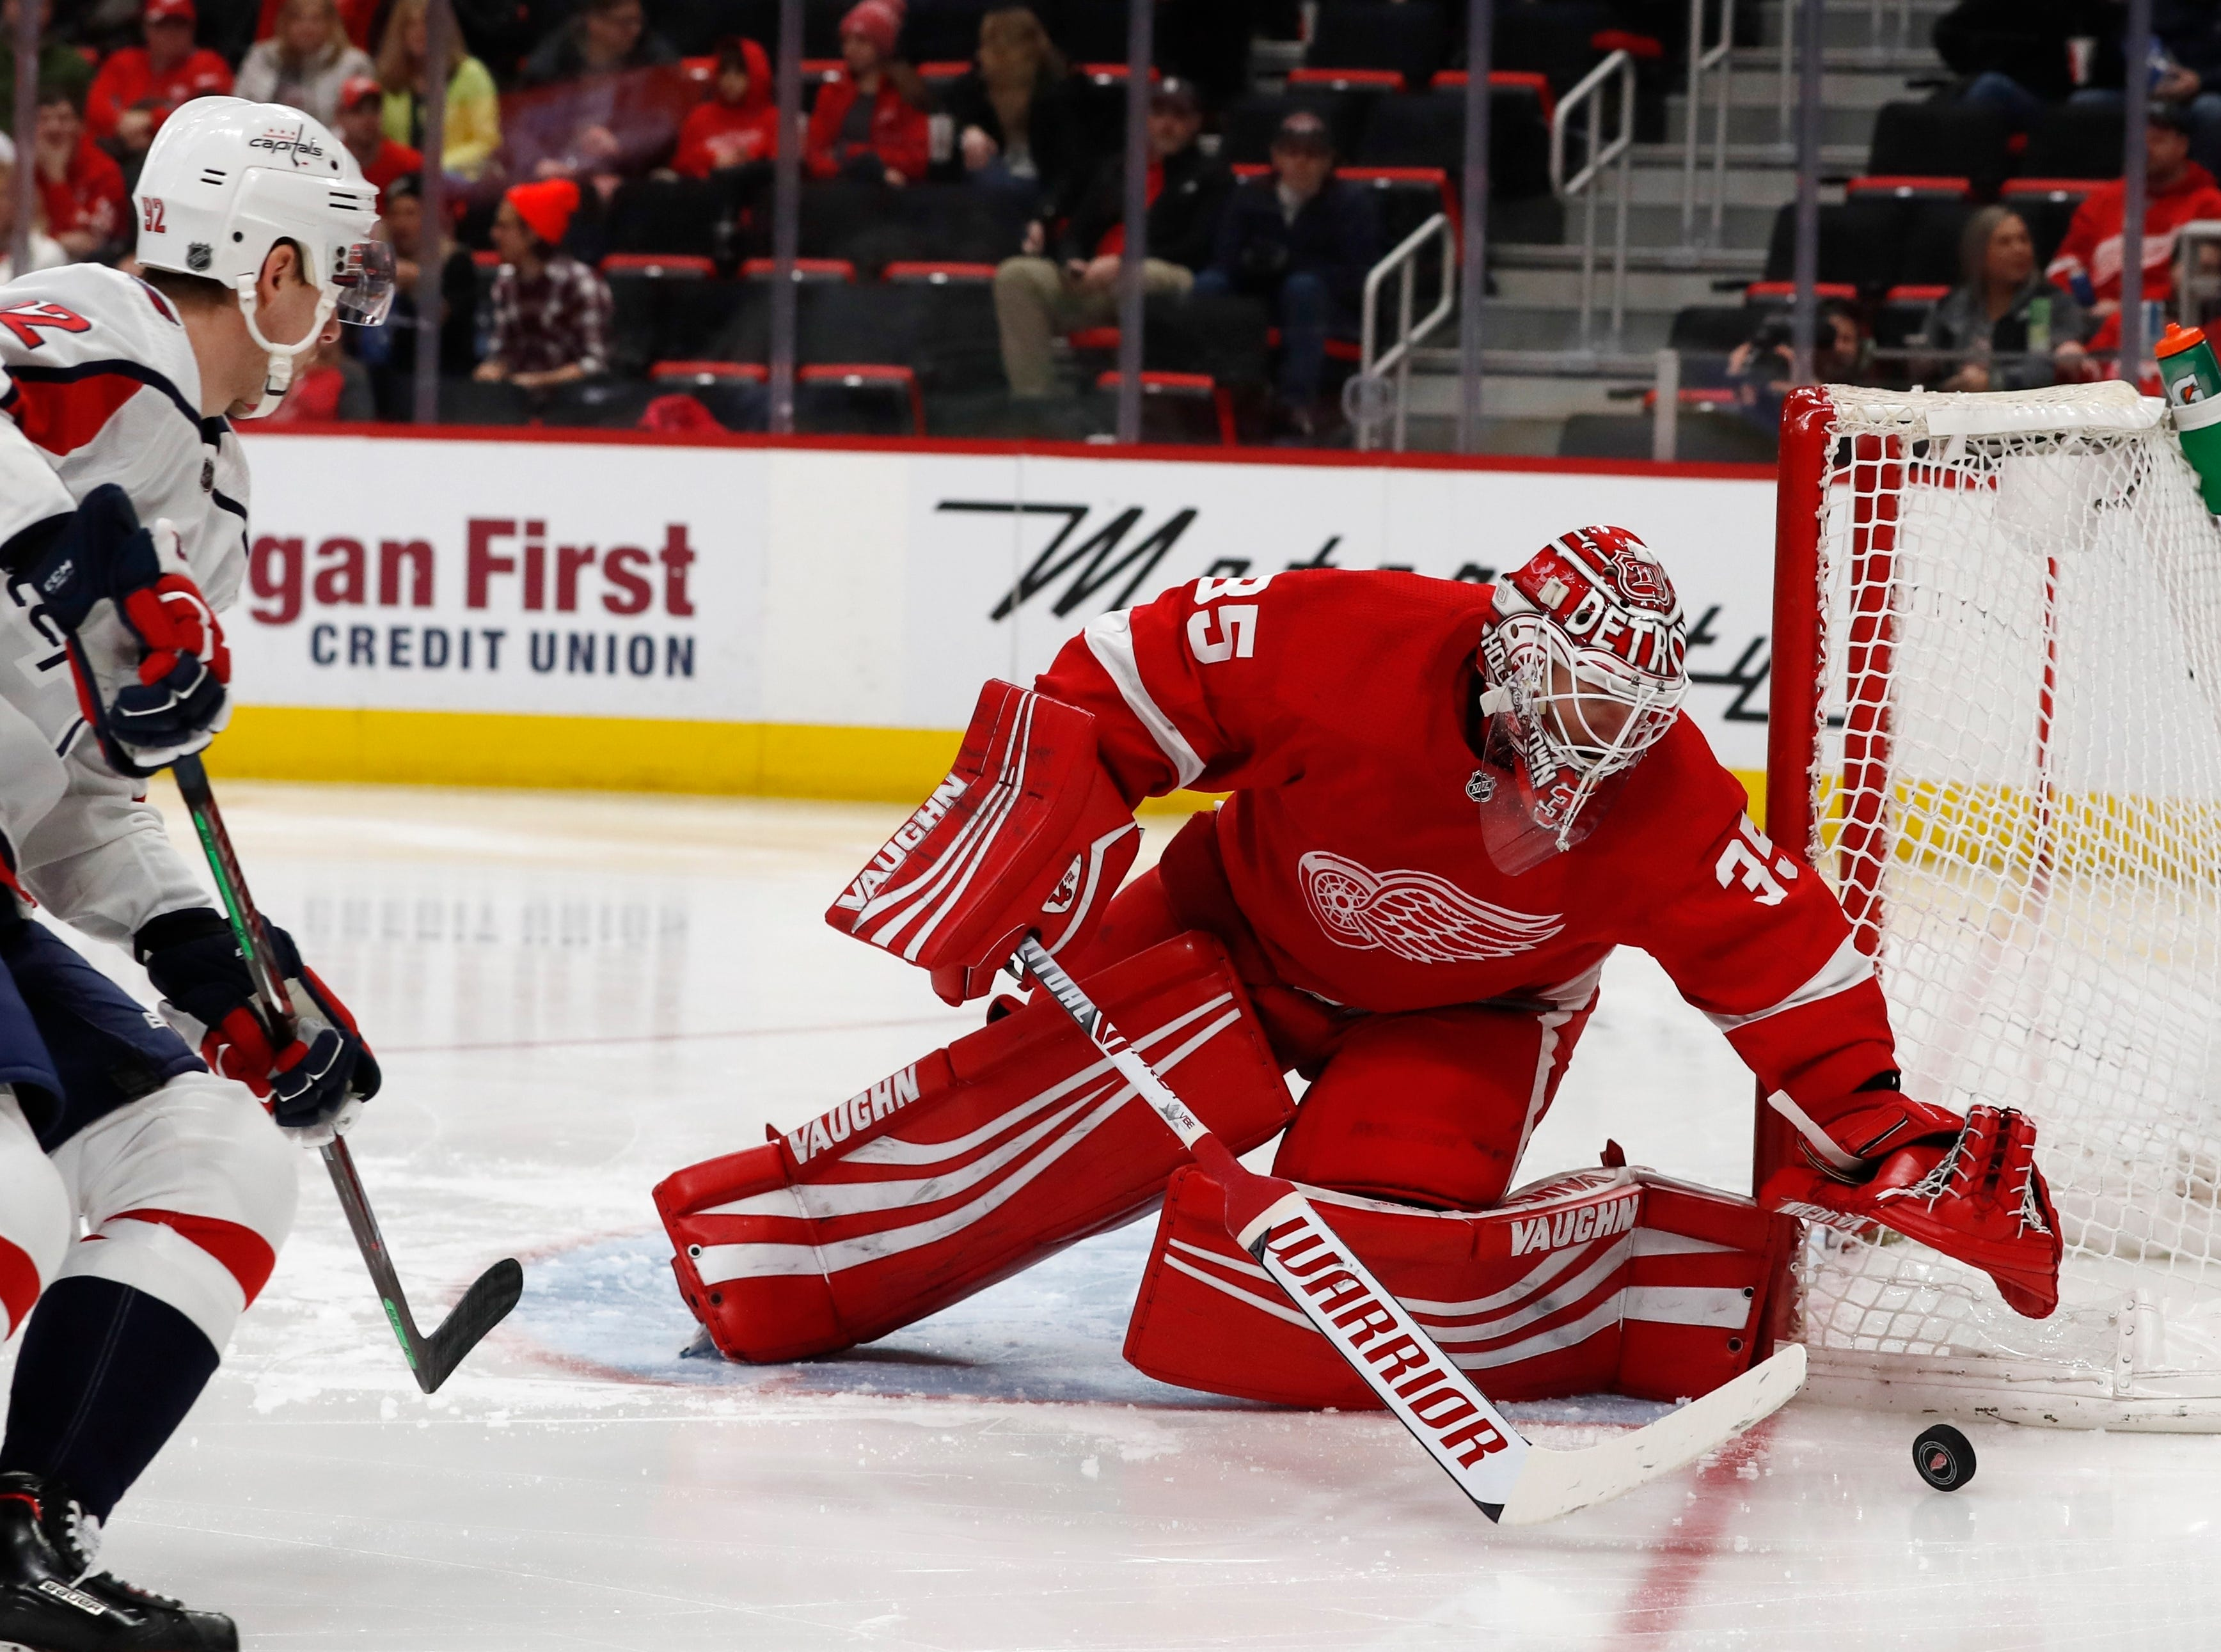 Detroit Red Wings goaltender Jimmy Howard (35) reaches for the puck as Washington Capitals center Evgeny Kuznetsov (92) approaches during the second period.